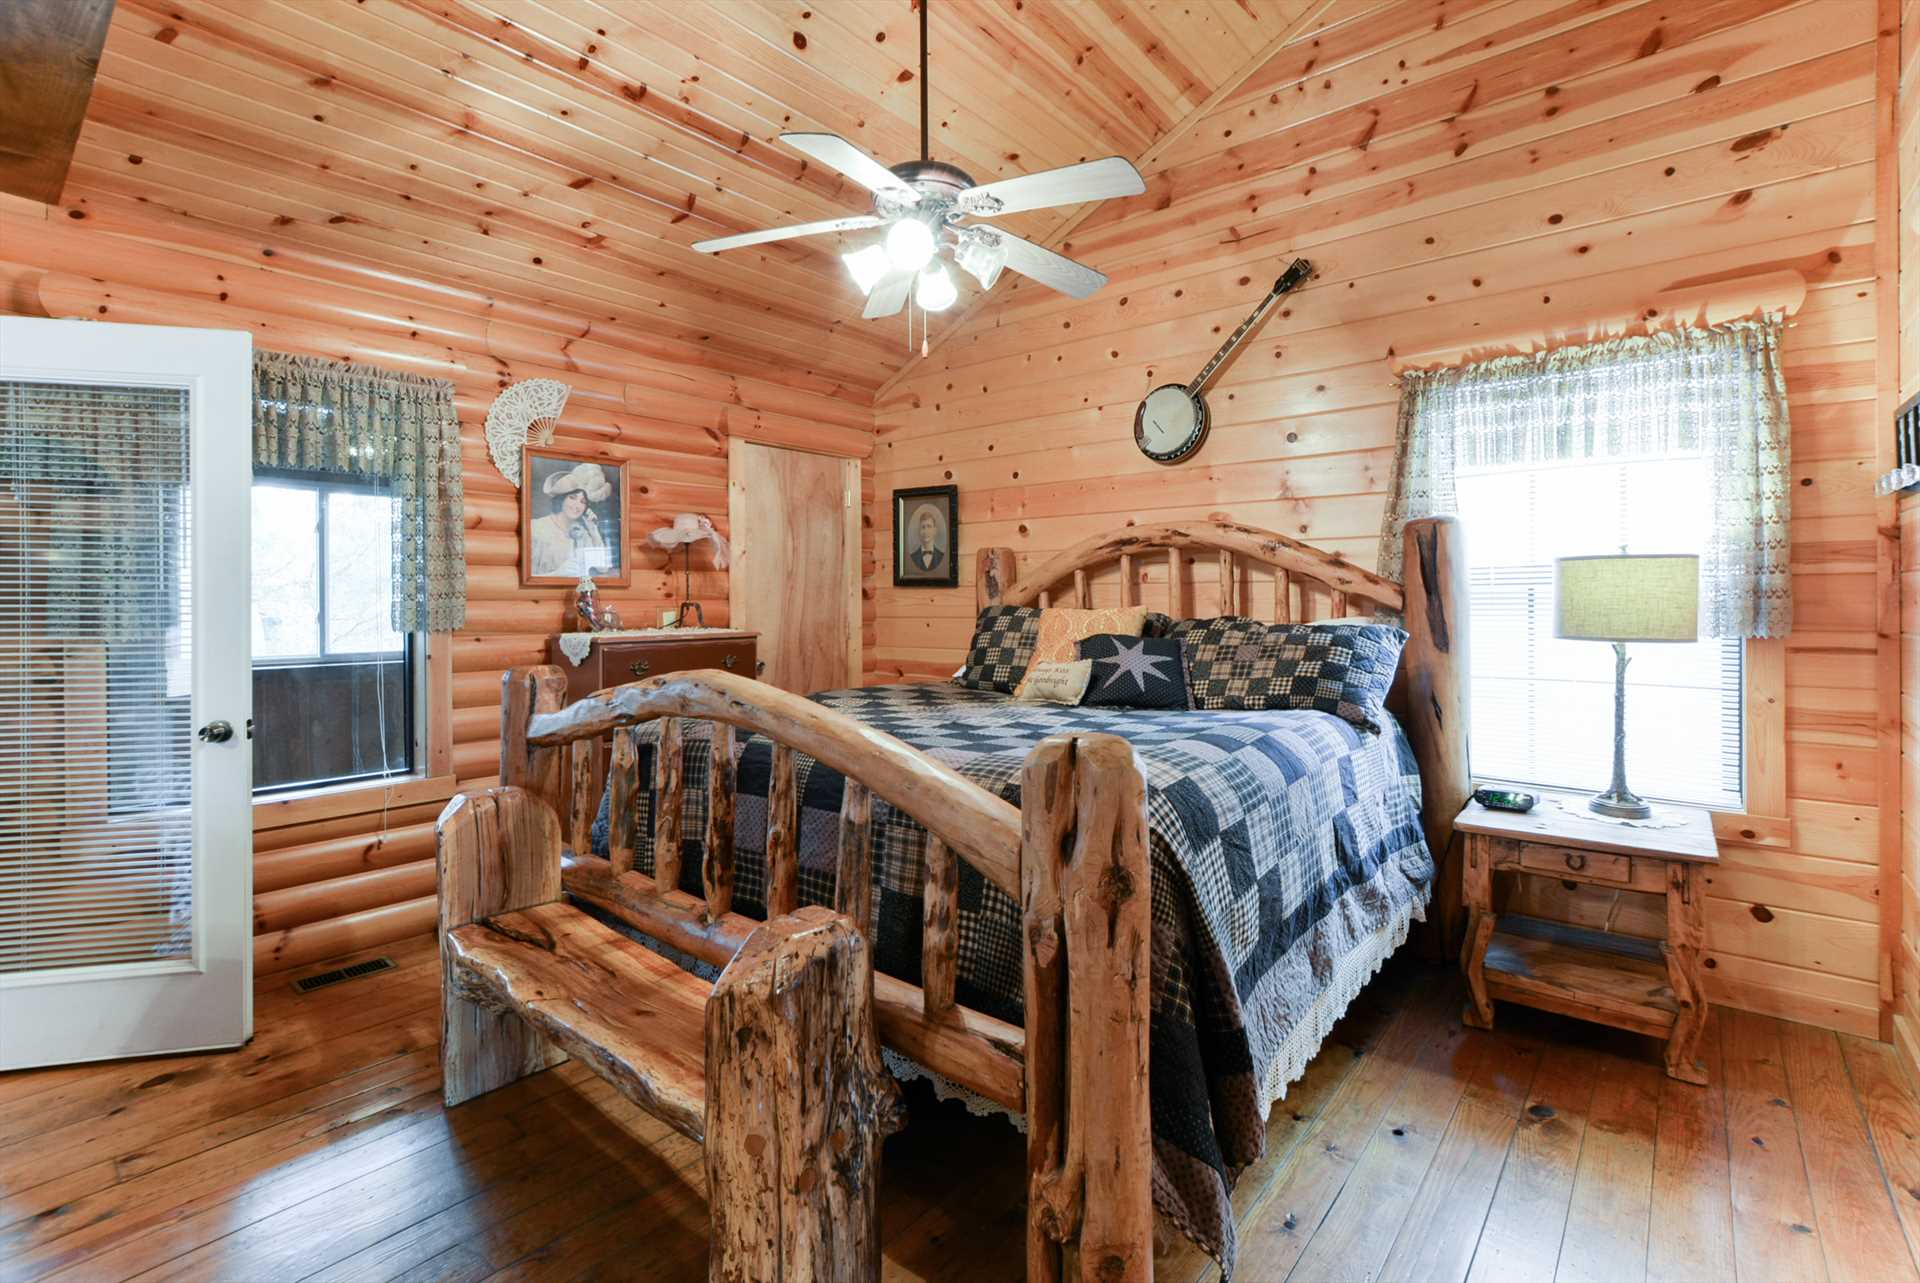 You'll love this rustic bed - a highlight of this cabin!